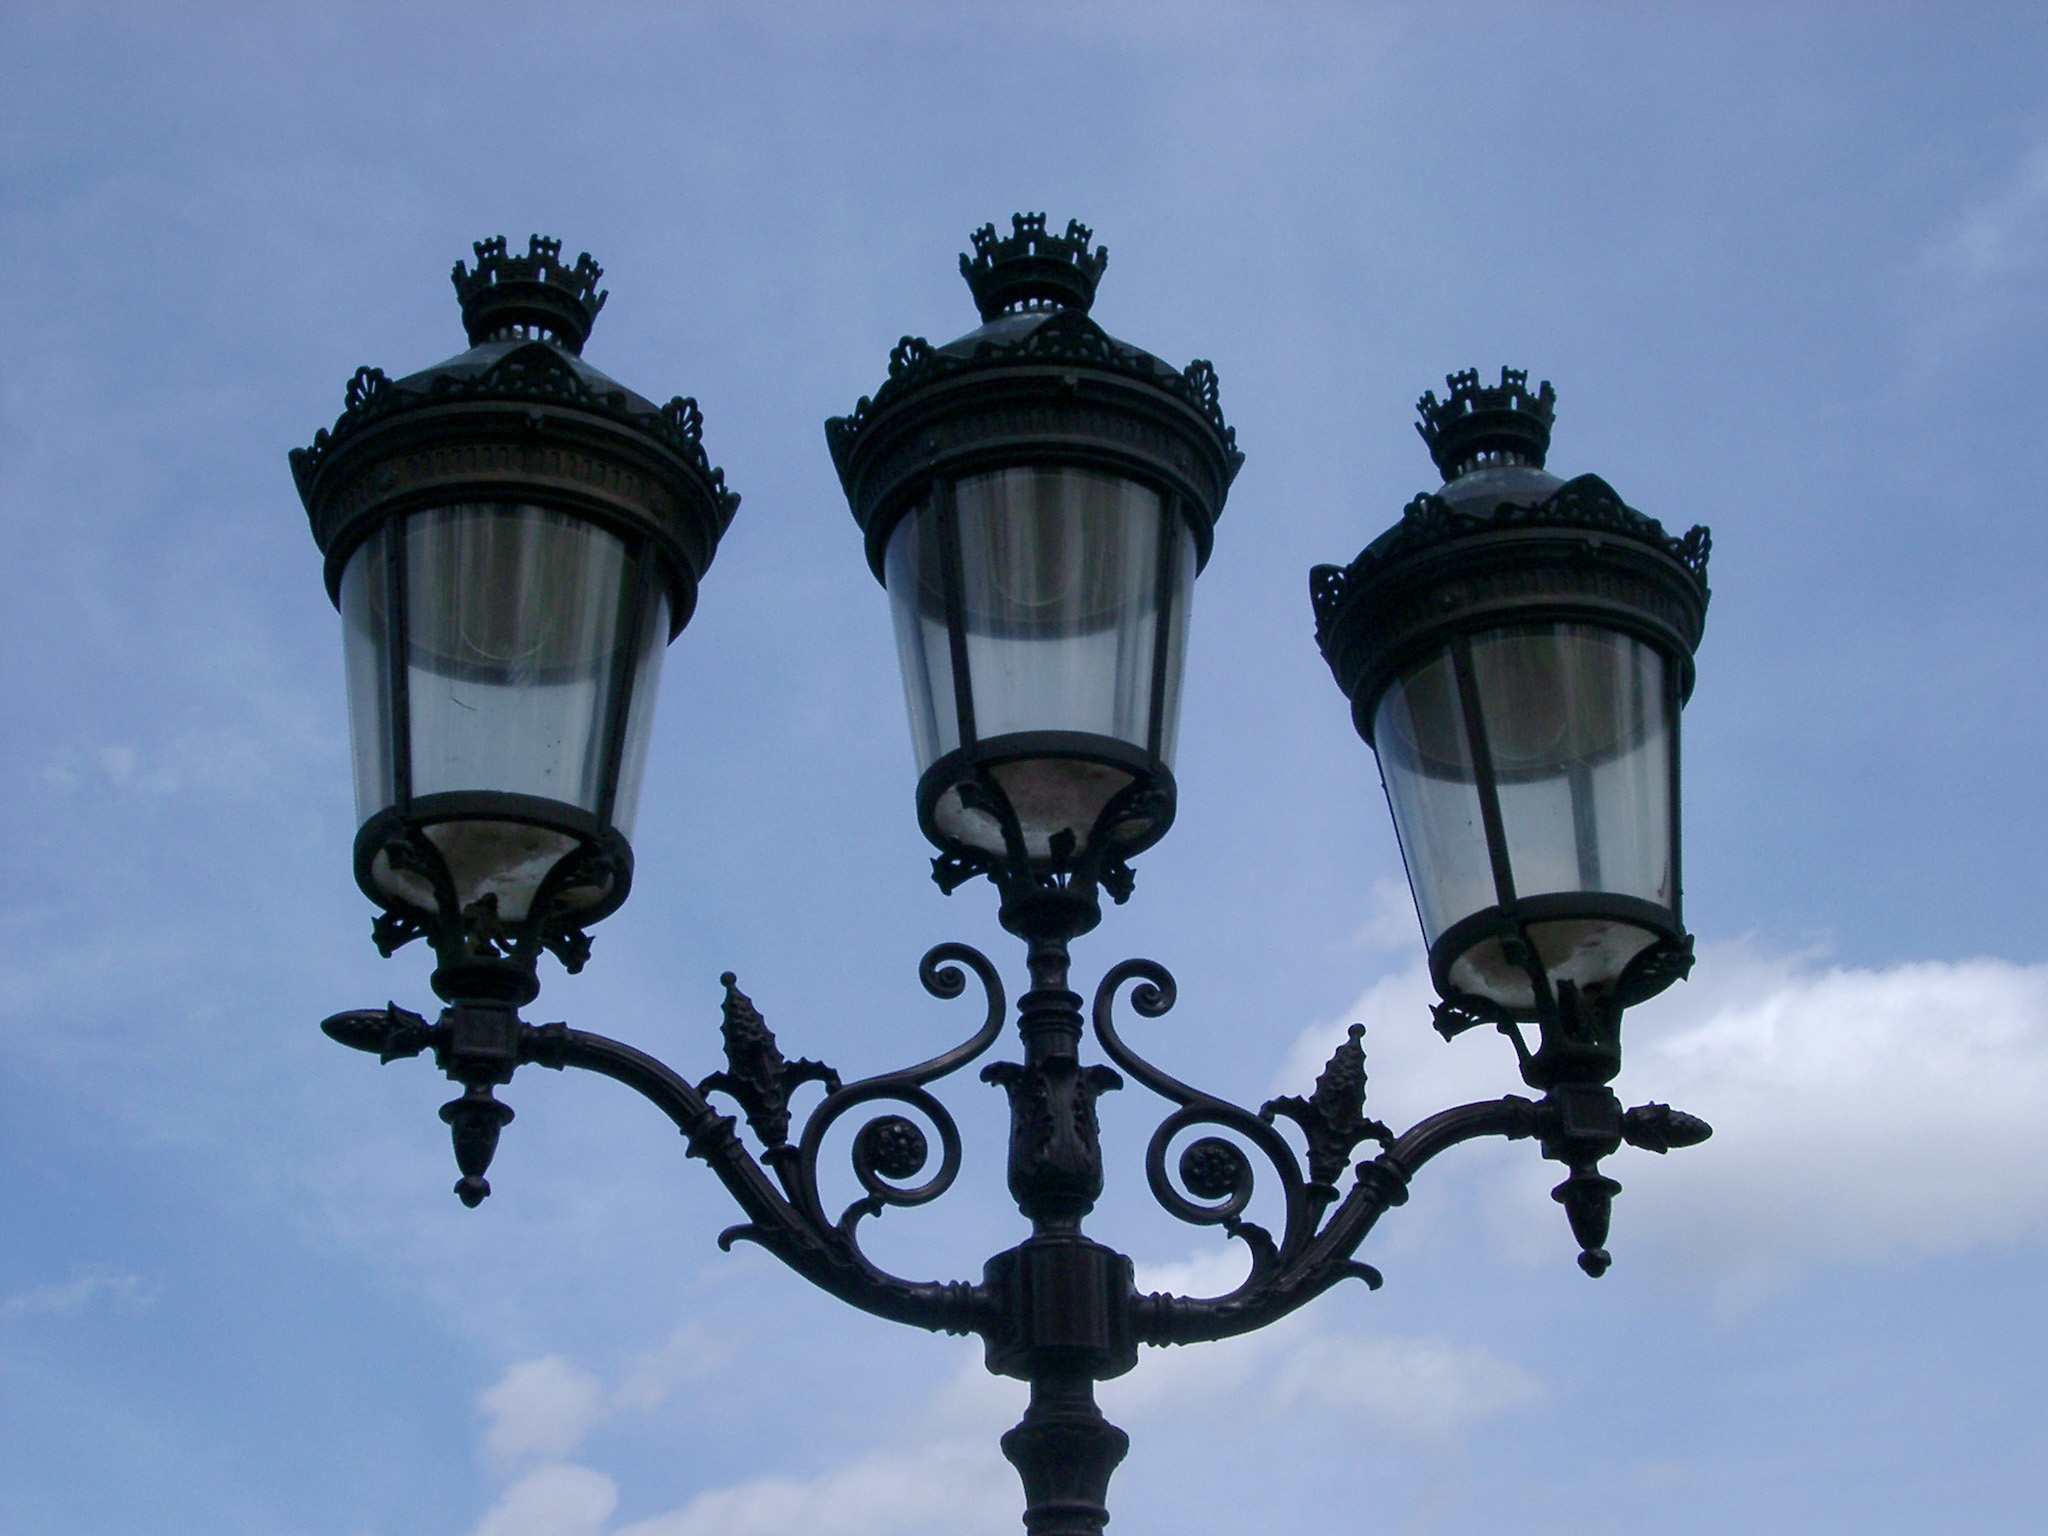 Paris lamppost with three lanterns in a typical Art Nouveau style of scrolling leaves against a cloudy blue sky